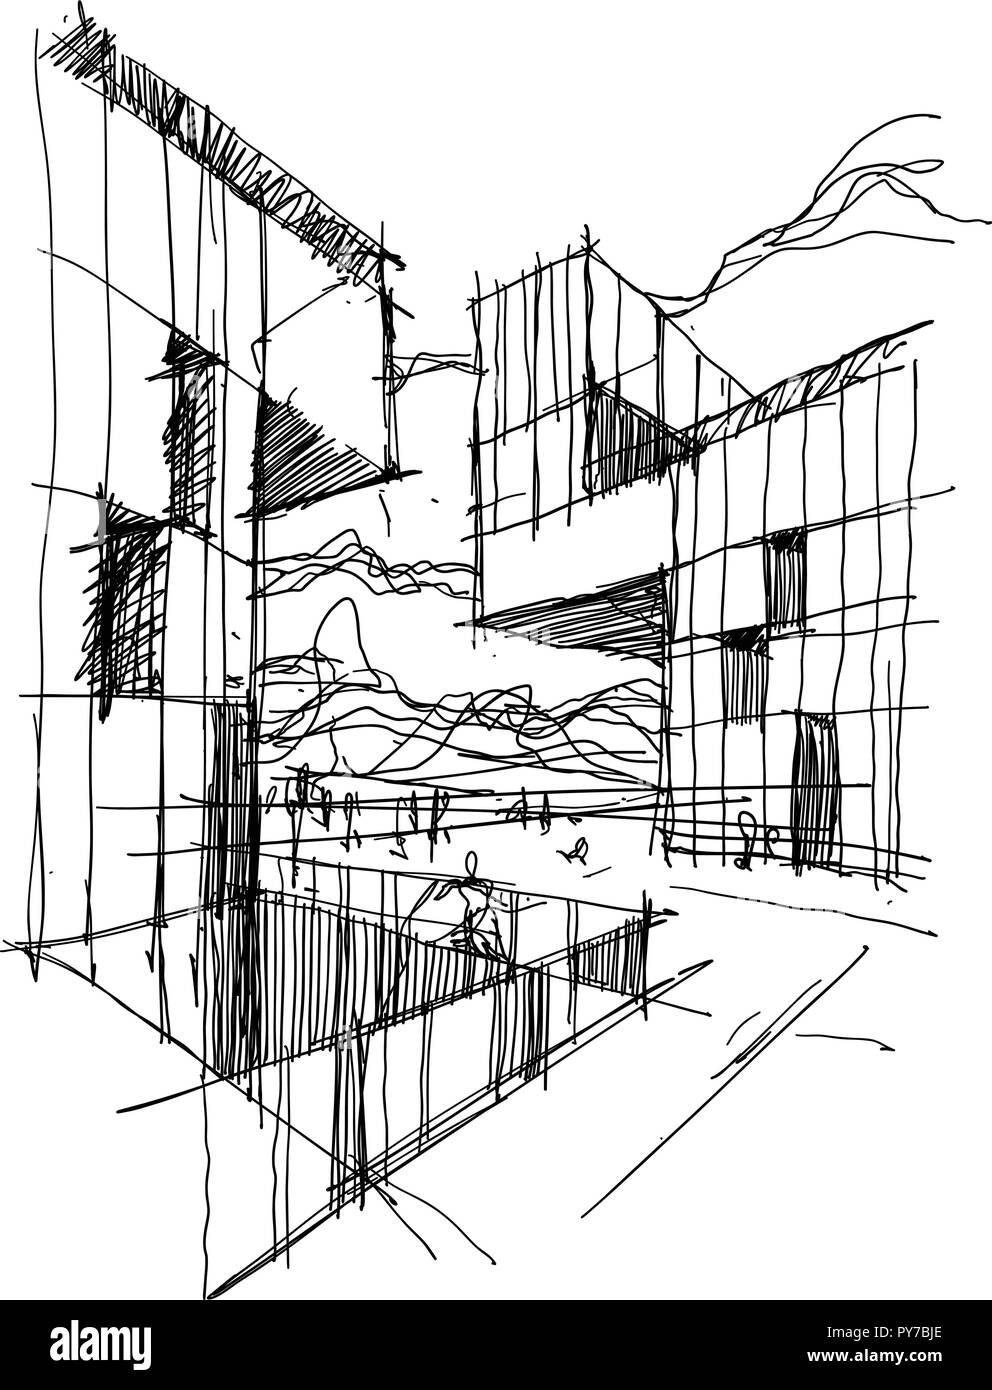 hand drawn architectural sketch of a modern abstract architecture with people around Stock Vector